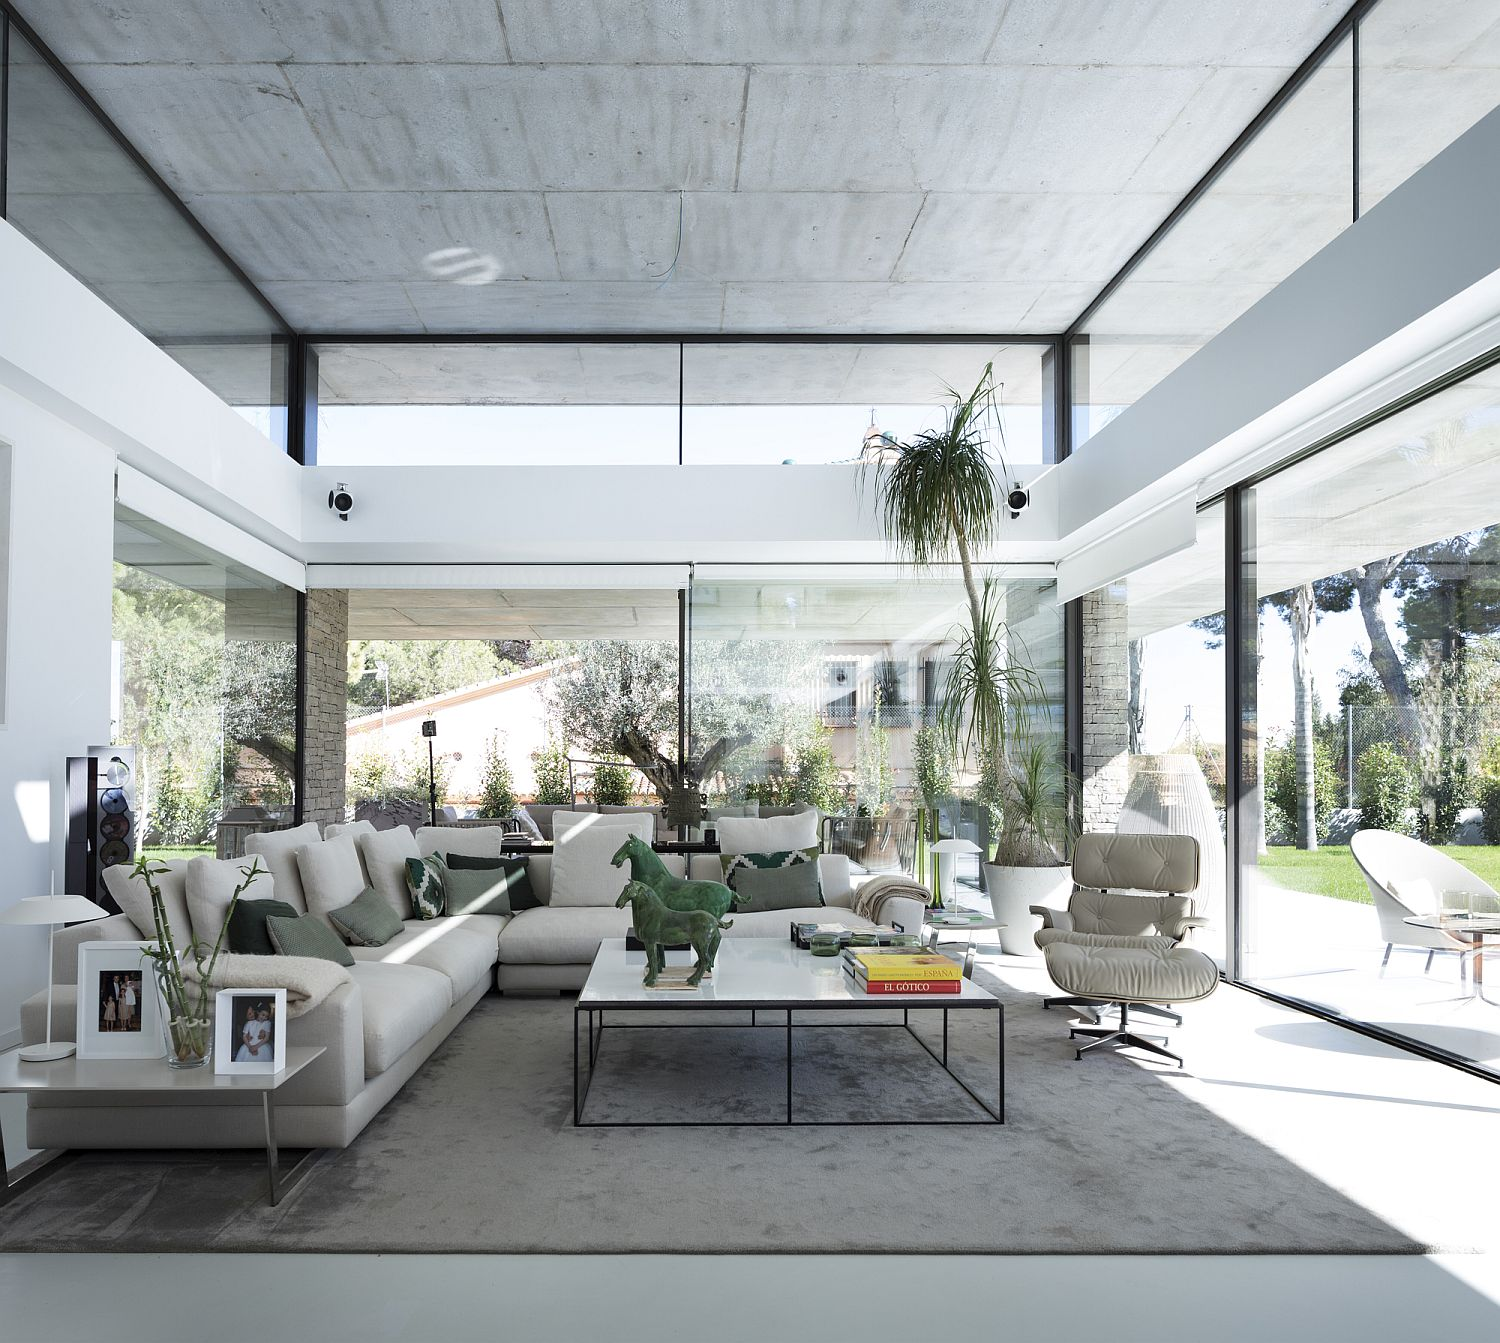 Sliding glass doors and floor-to-ceiling glass walls create a breezy indoor-outdoor interplay